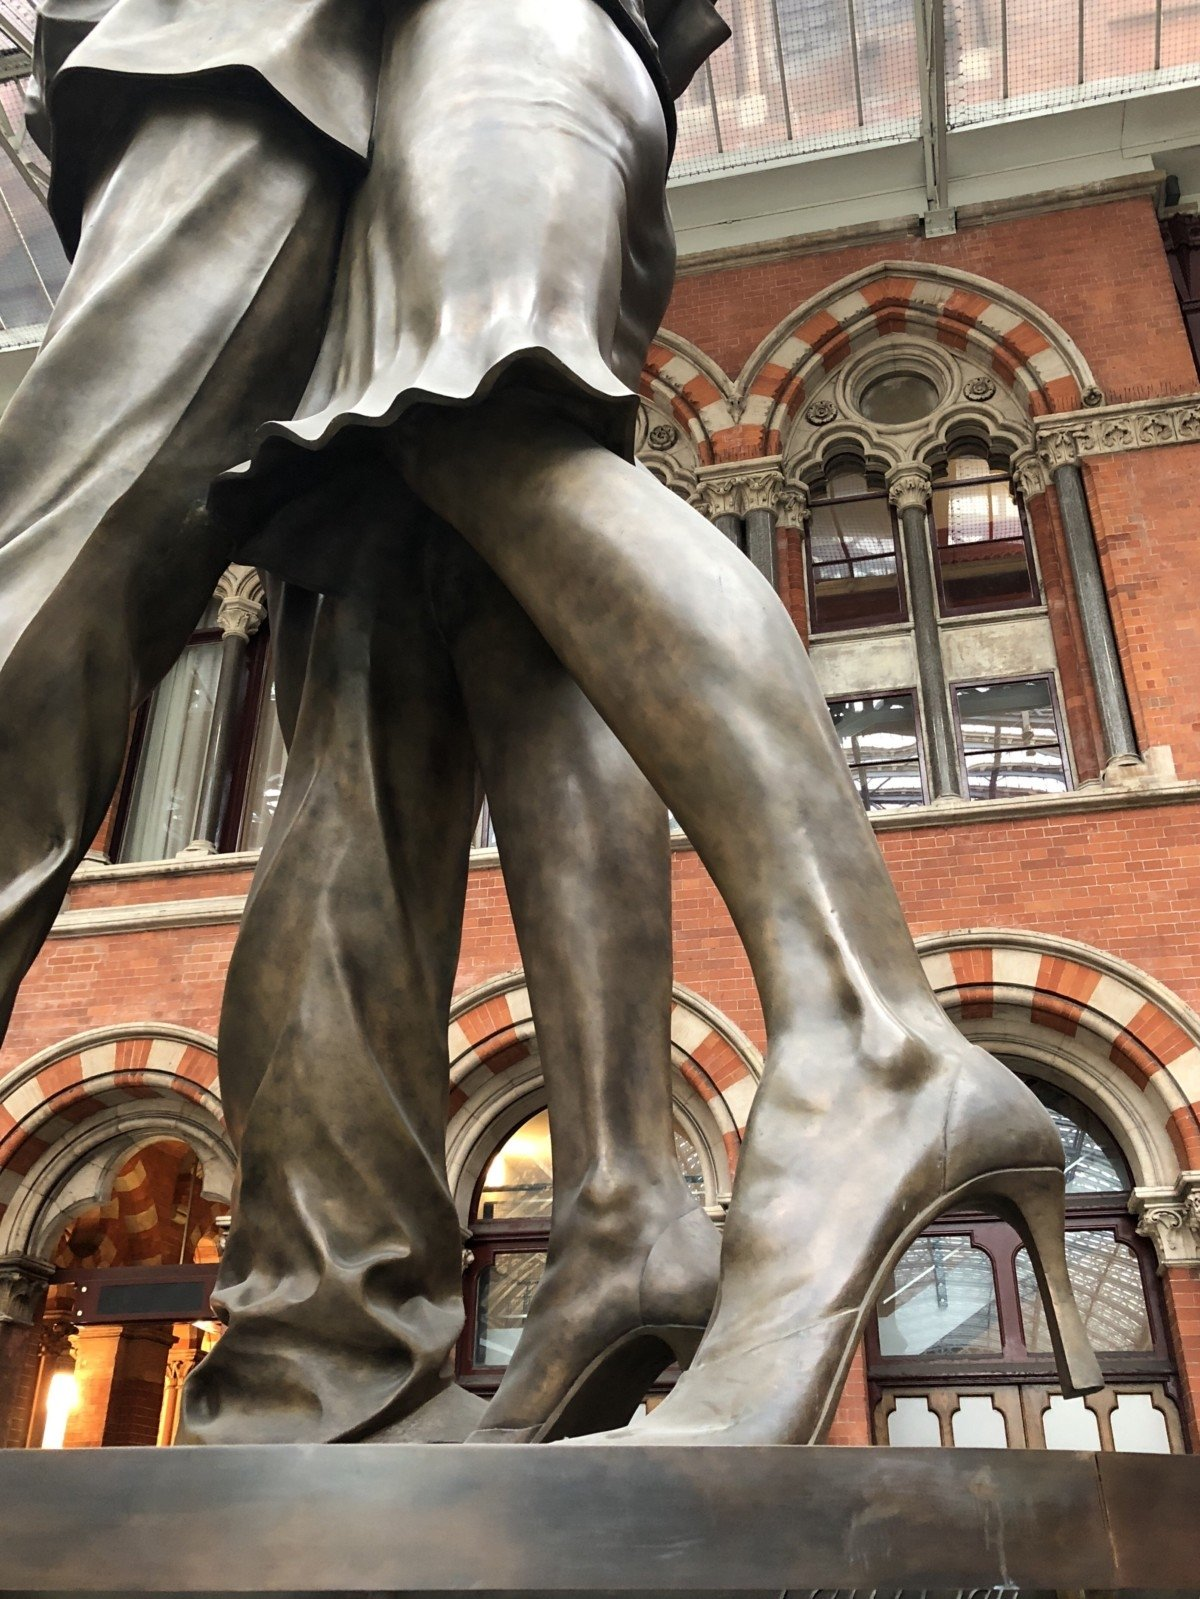 My Sunday photo The Meeting Place statue at Kingscross St Pancras